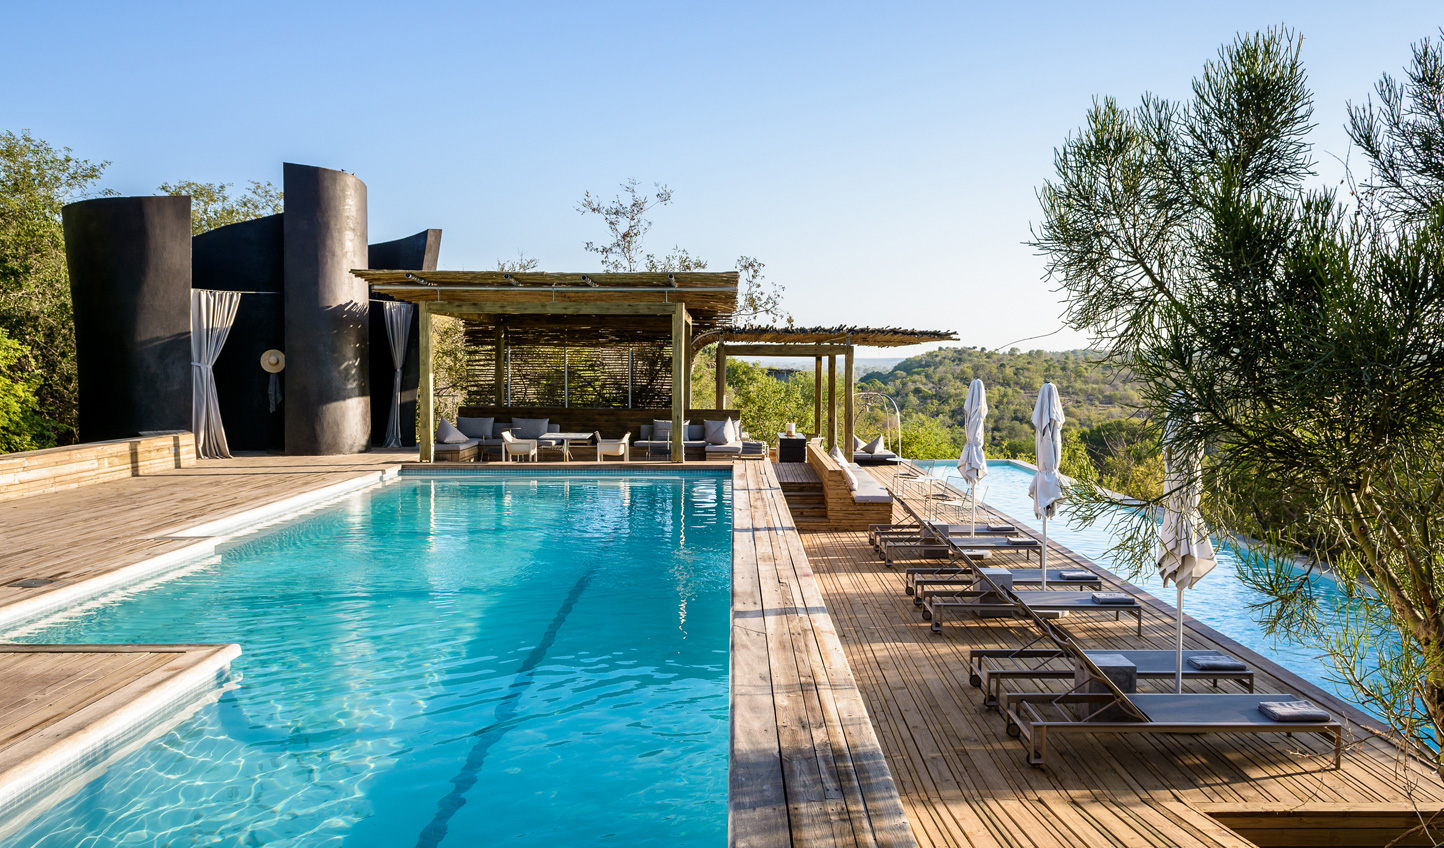 Spend an afternoon or two soaking in the African sun by Singita Lebombo's beautiful pools